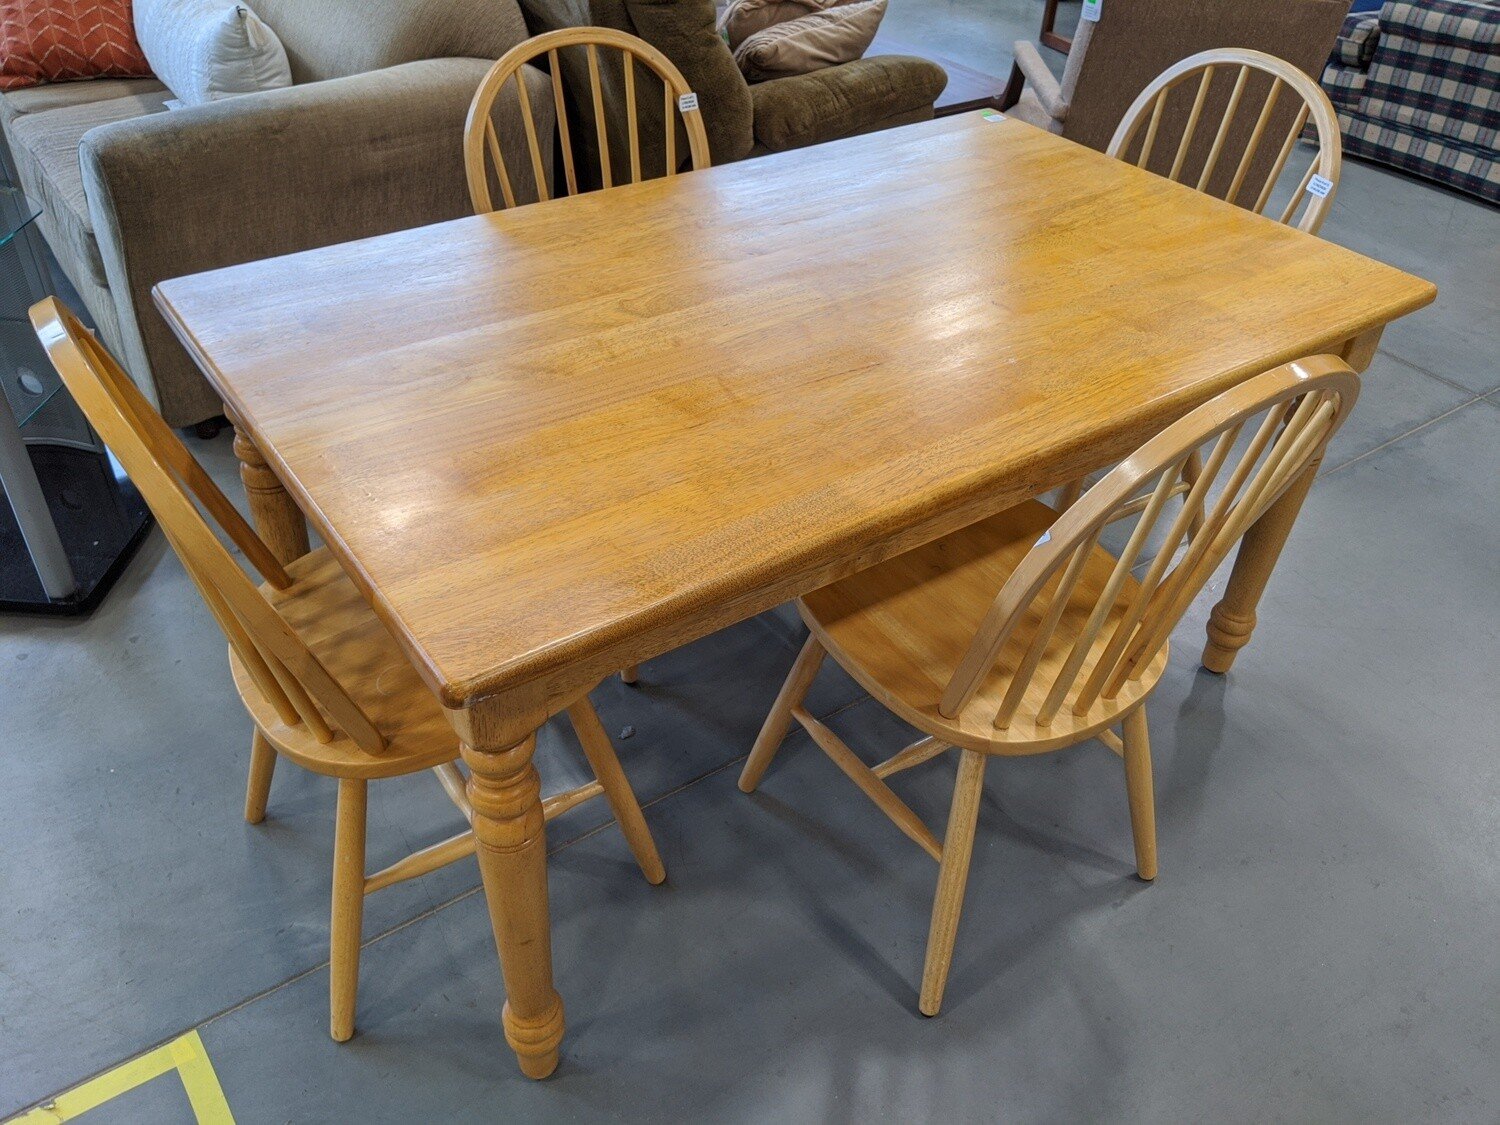 Dining Room Set with Table and 4 Chairs #1884